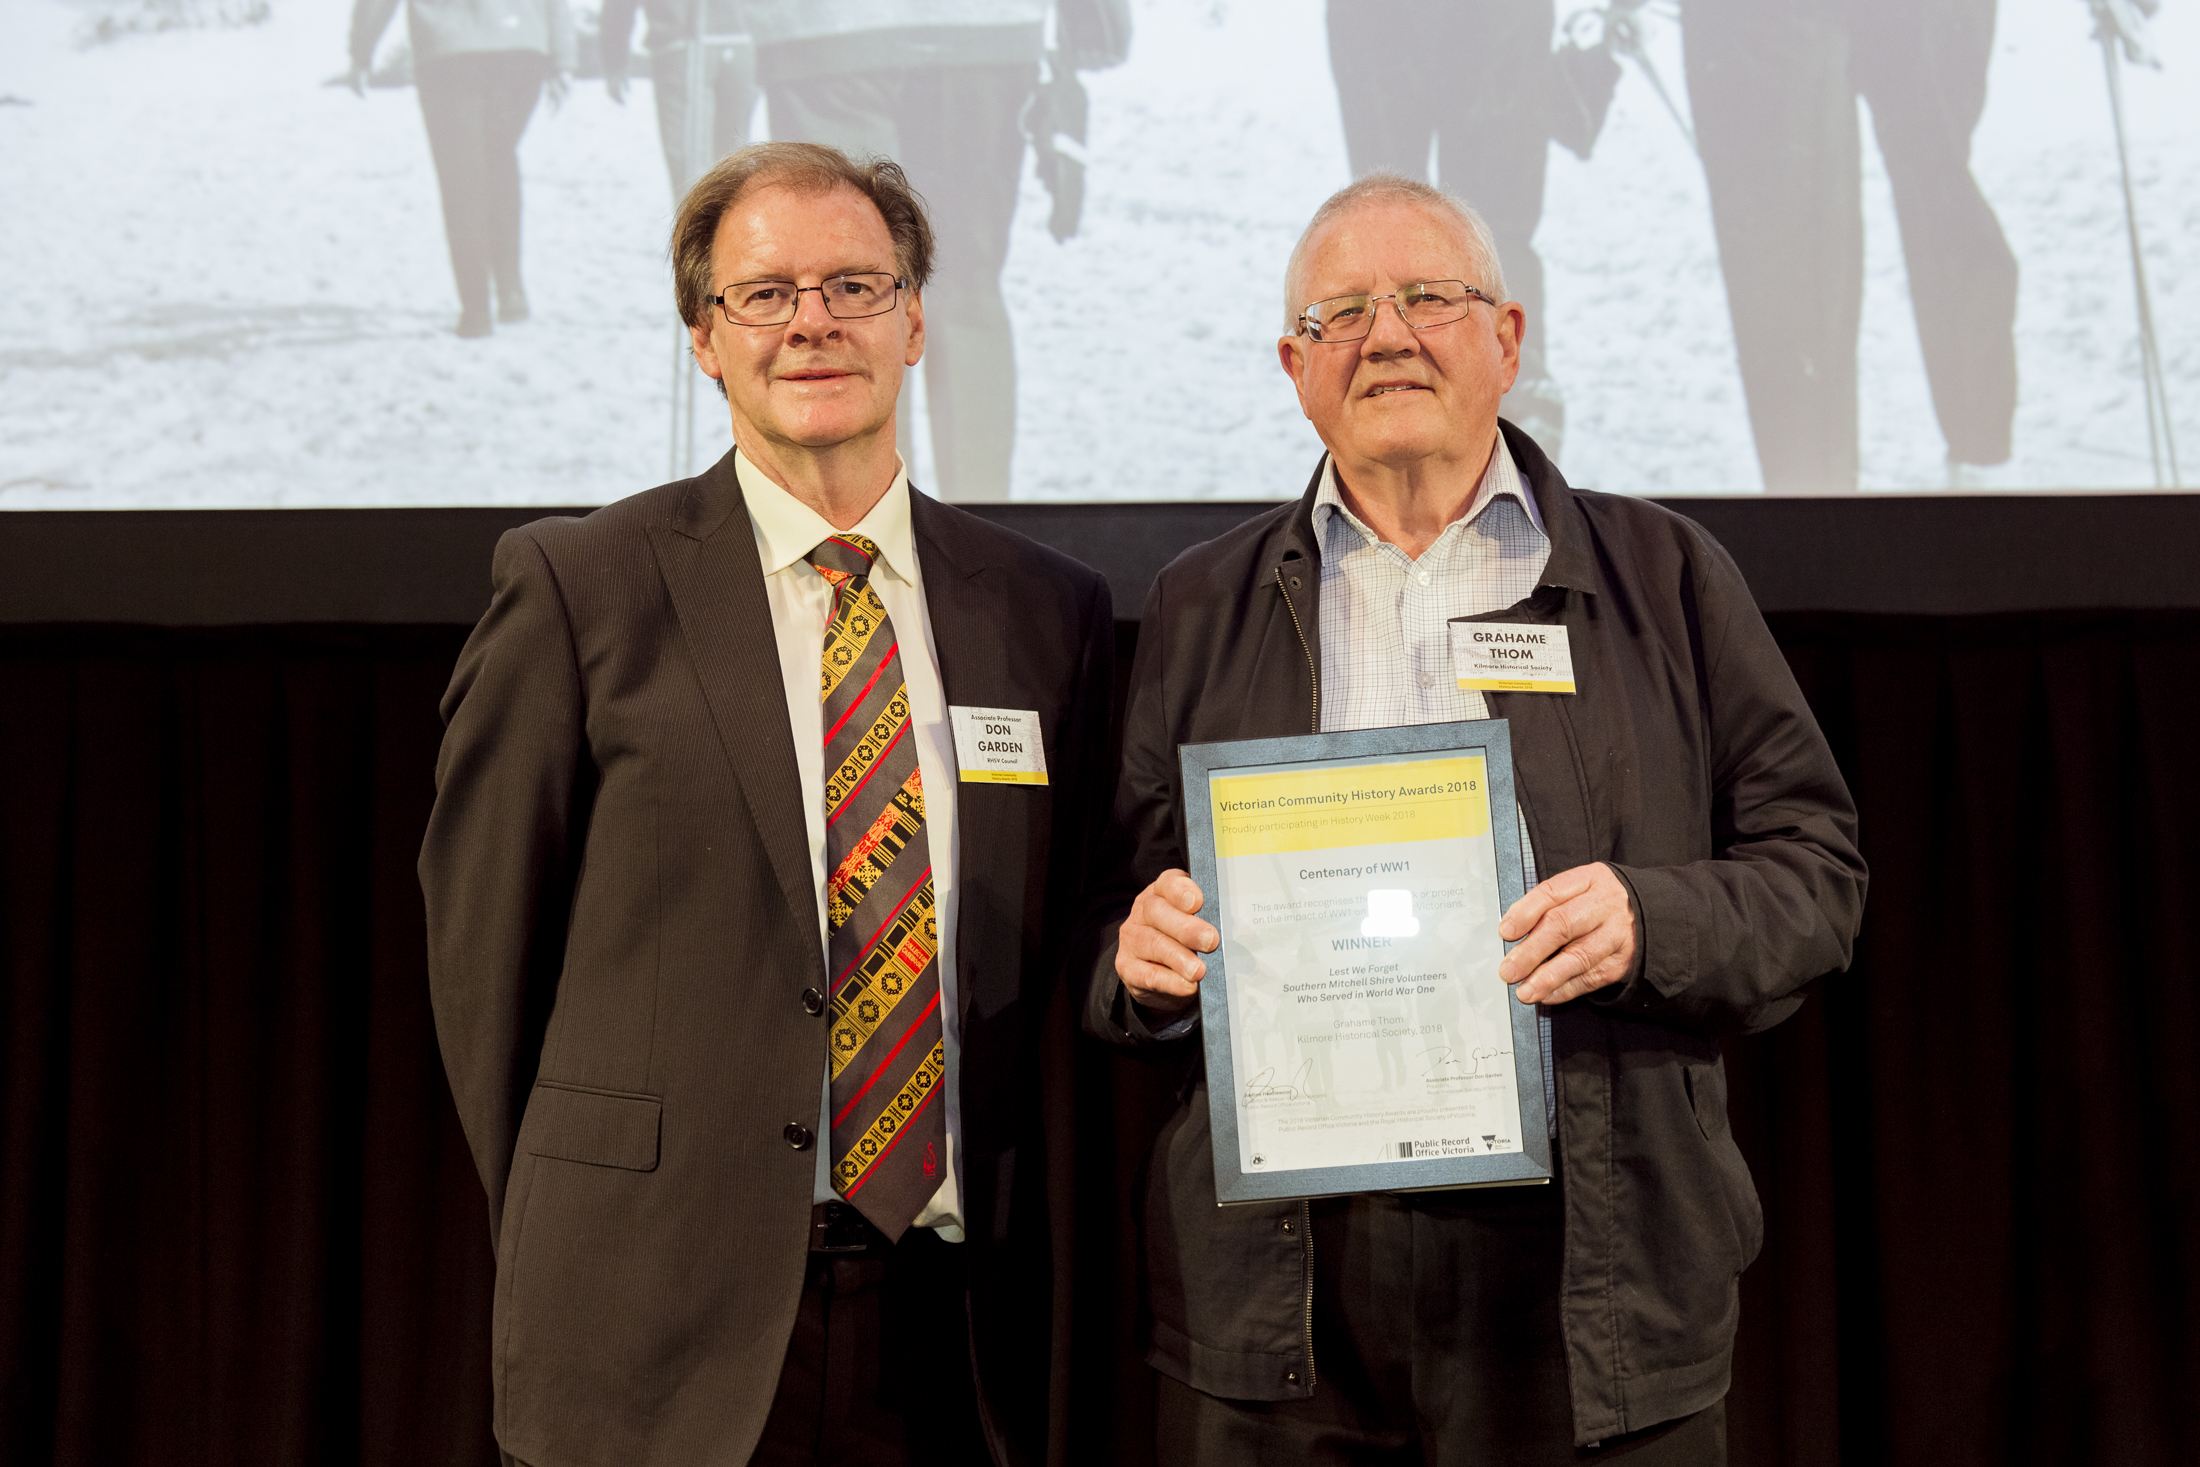 photo of two men standing side by side with one holding a certificate in his hands